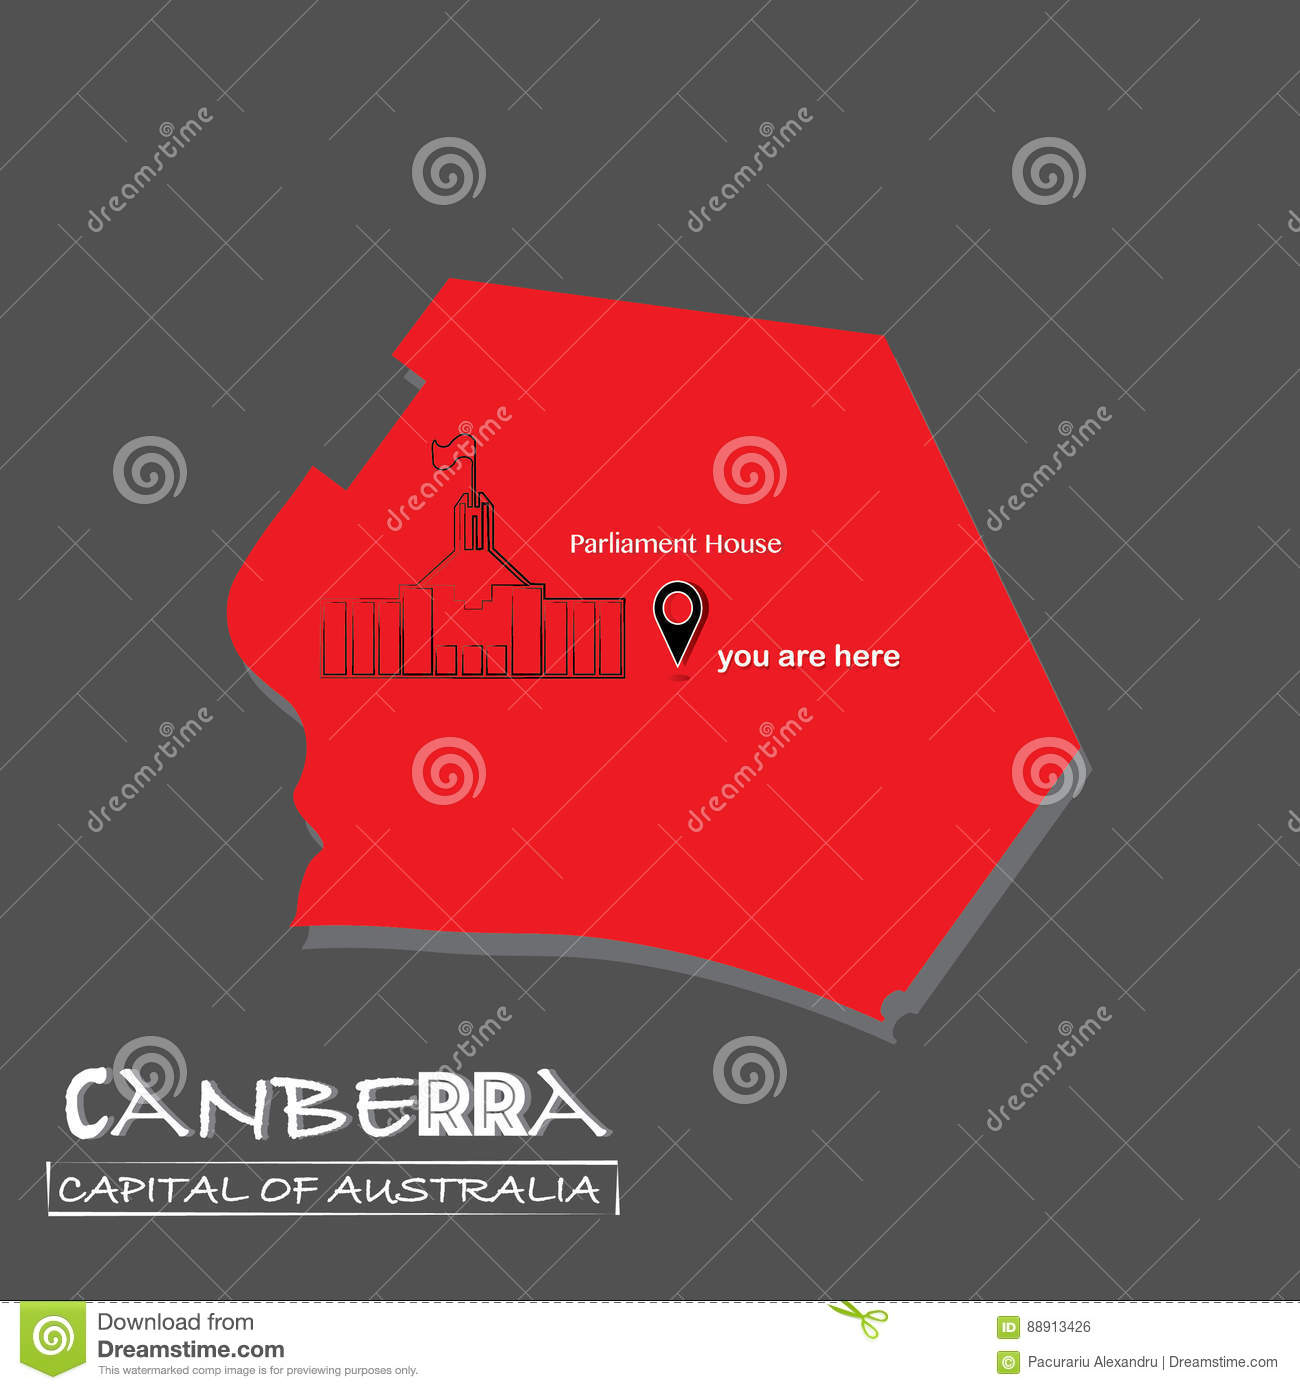 Canberra-Capital of Australia map Vector illustration-You are Here-Parliament building, isolated 3d look political map